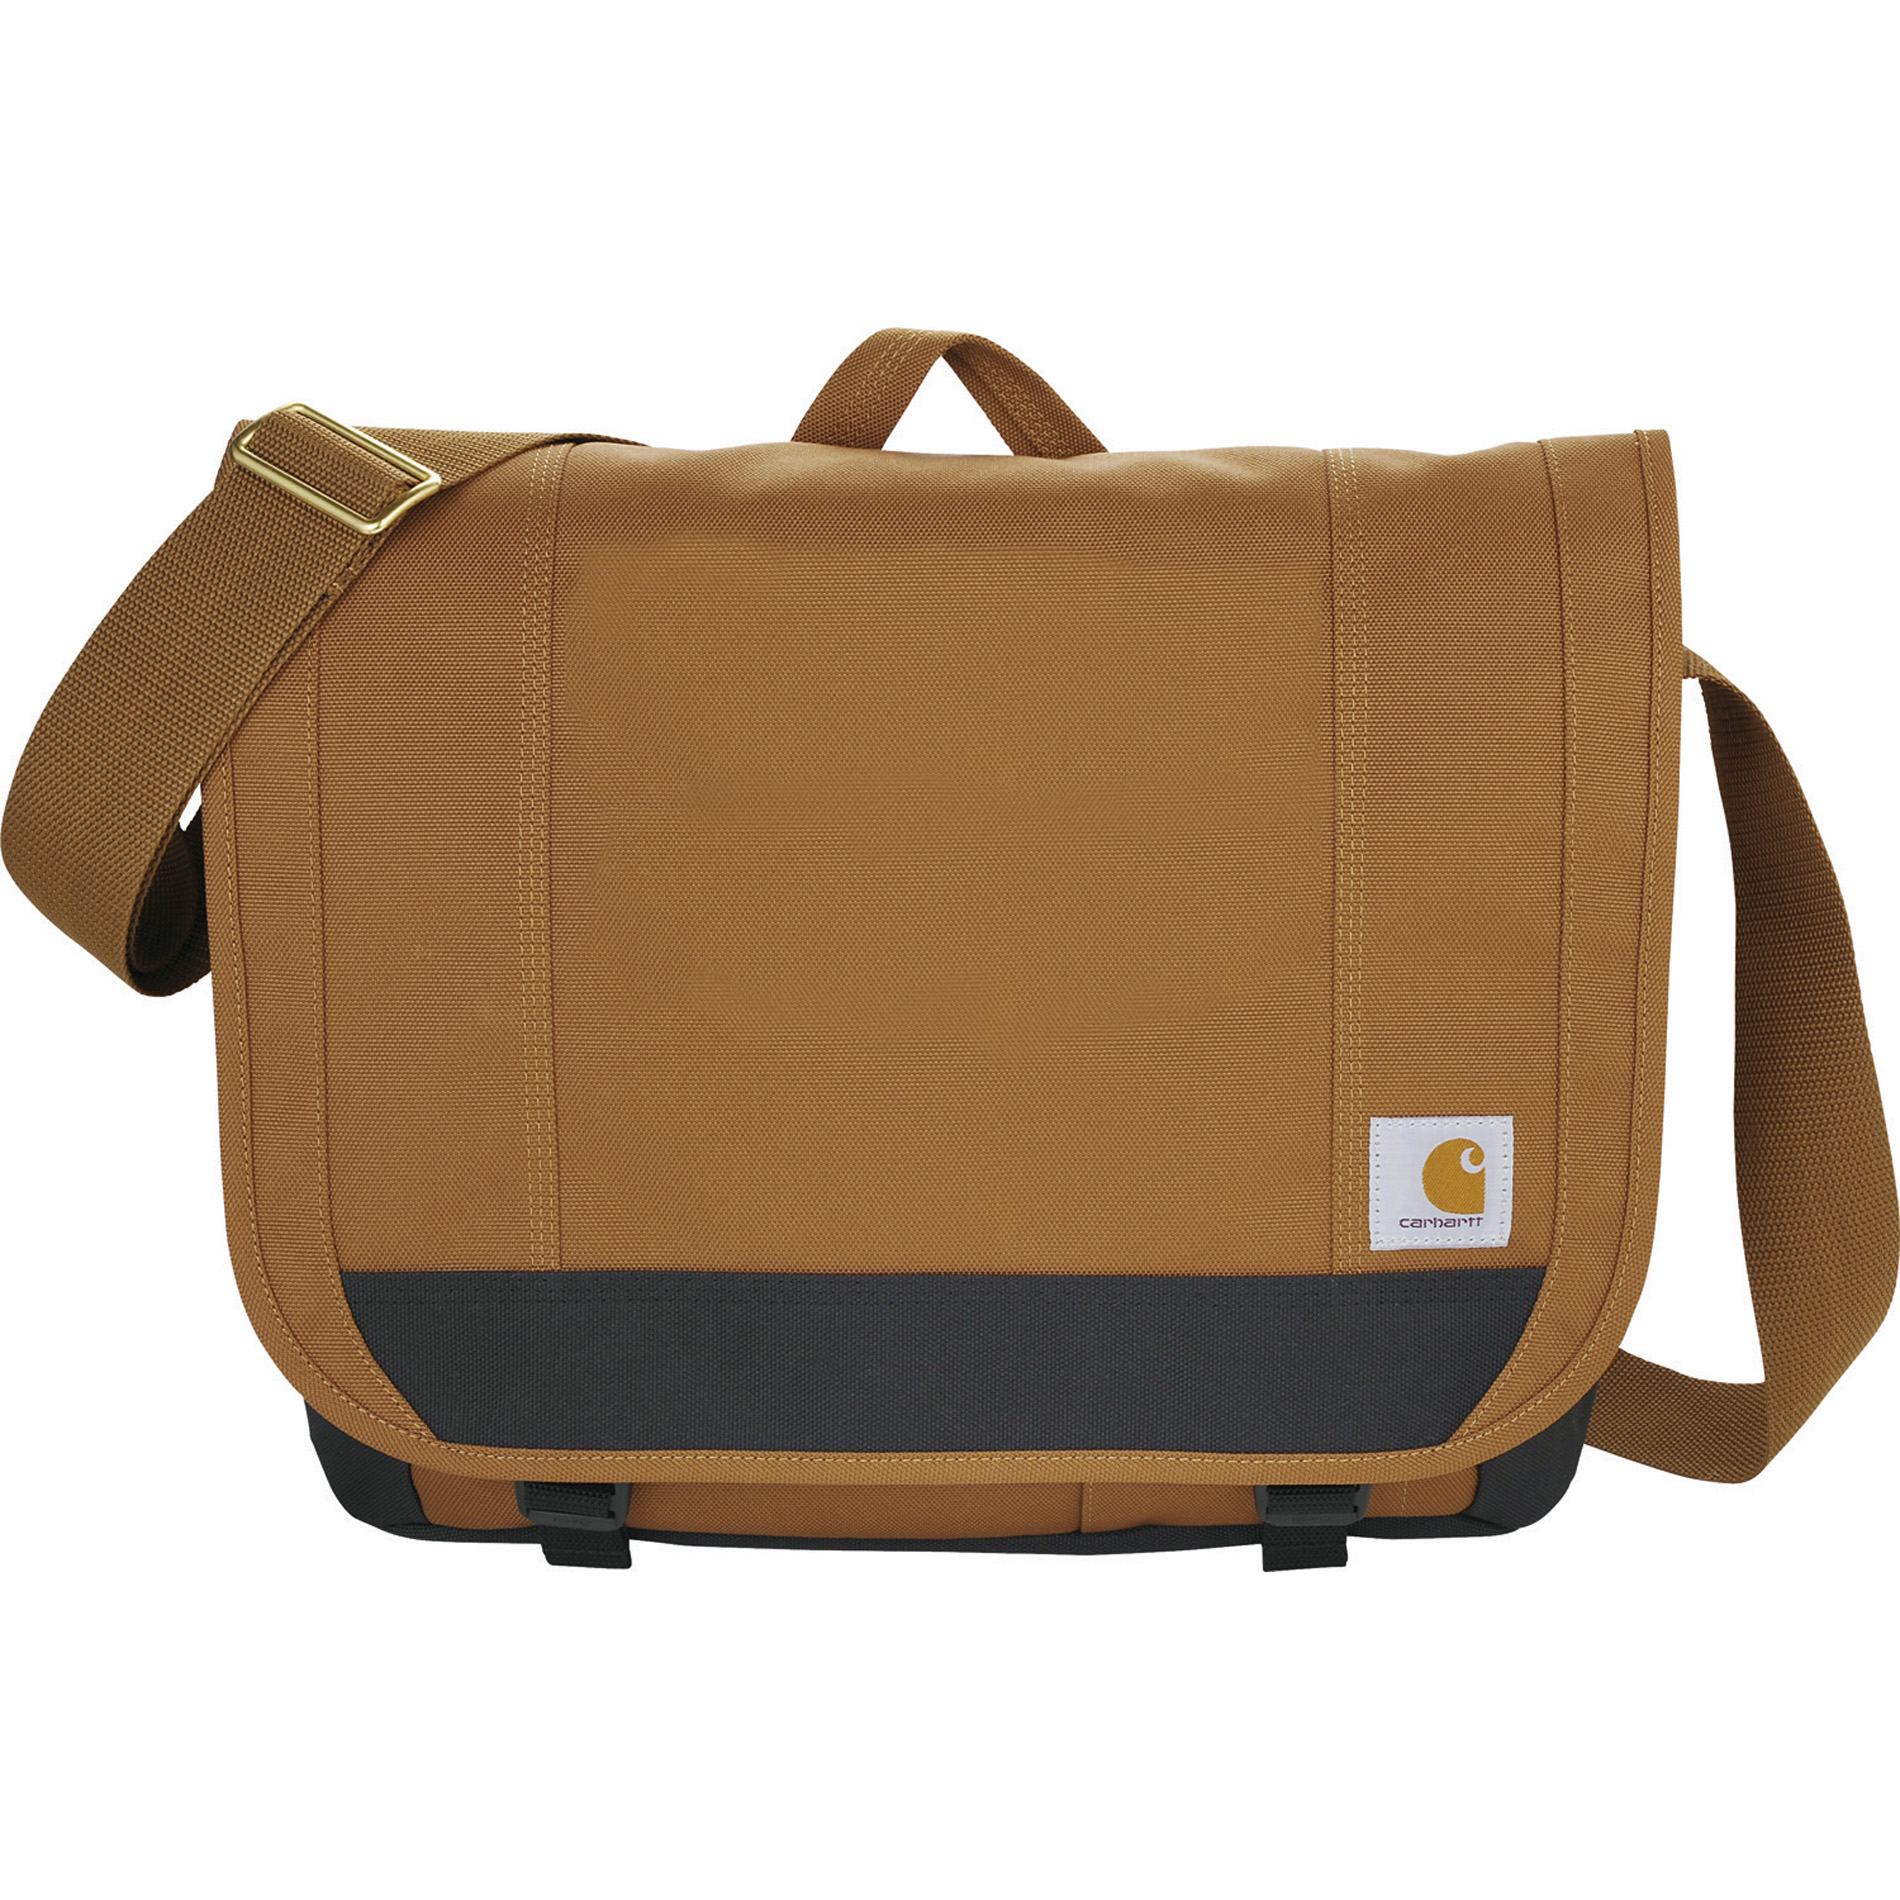 "Carhartt 1889-60 - Signature 17"" Computer Messenger Bag"